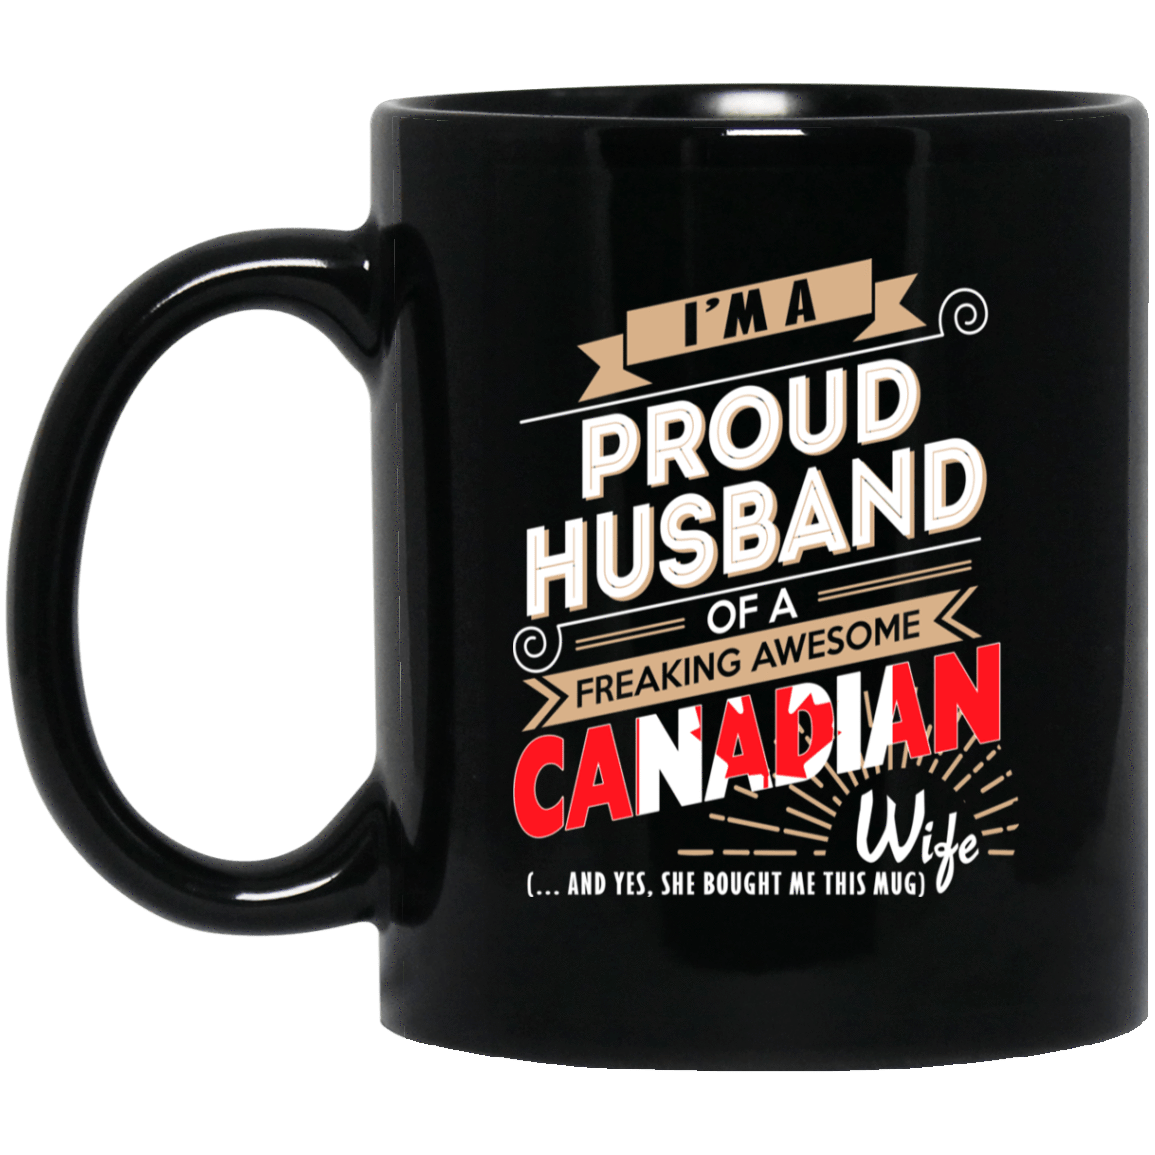 Proud Husband Of A Freaking Awesome Canadian Wife Mug 1065-10181-72136601-49307 - Tee Ript